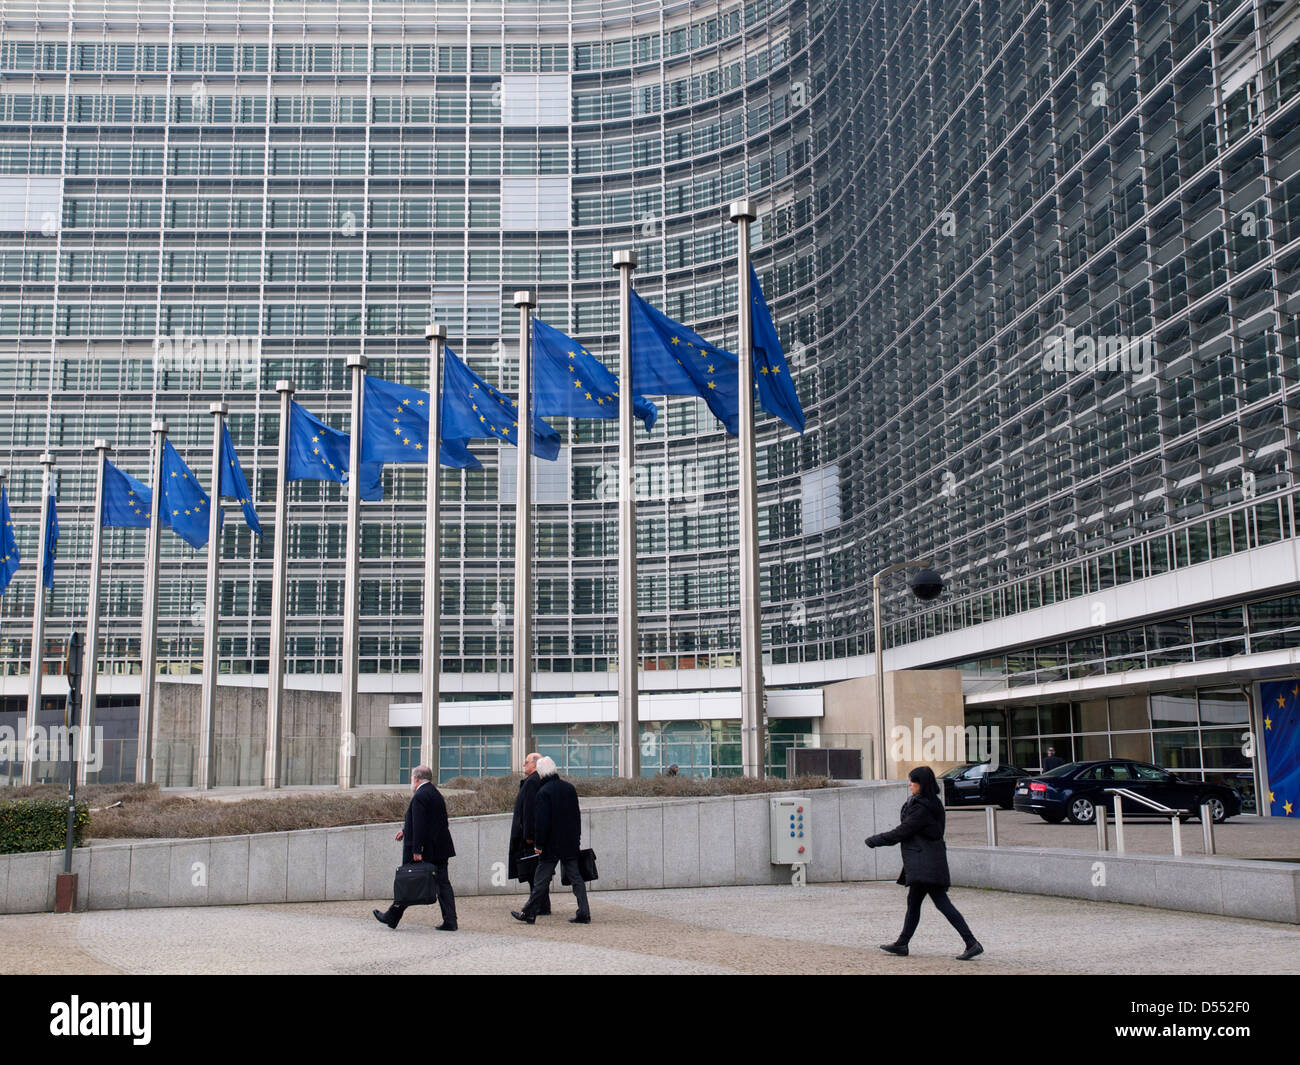 People at the Berlaymont European Commission building in Brussels, Belgium - Stock Image